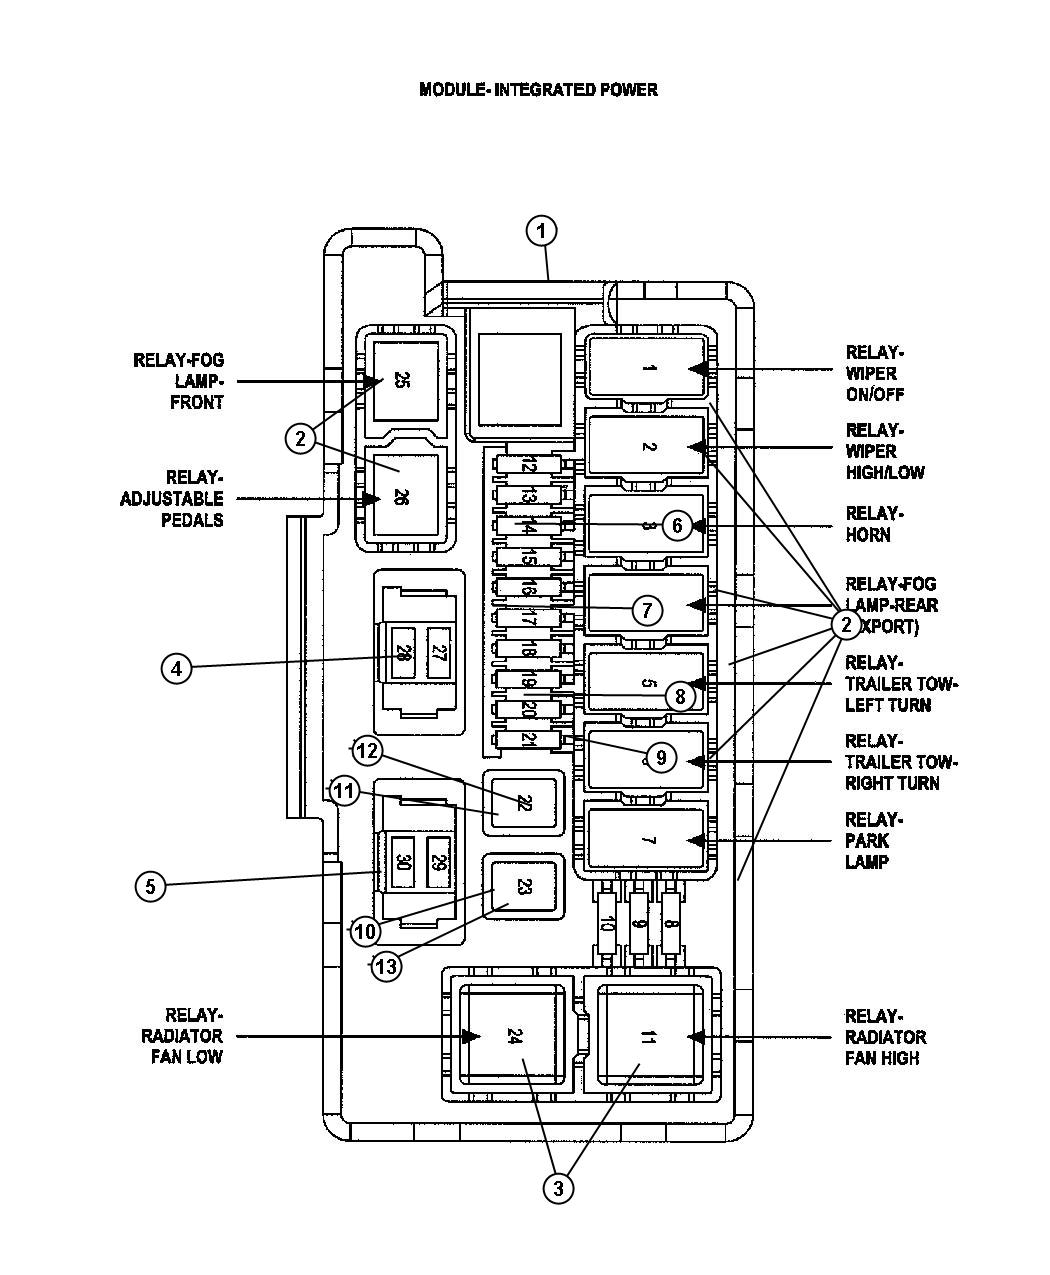 i2163577 jeep stereo wiring diagram jeep free wiring diagrams 2008 jeep wrangler horn wiring diagram at virtualis.co